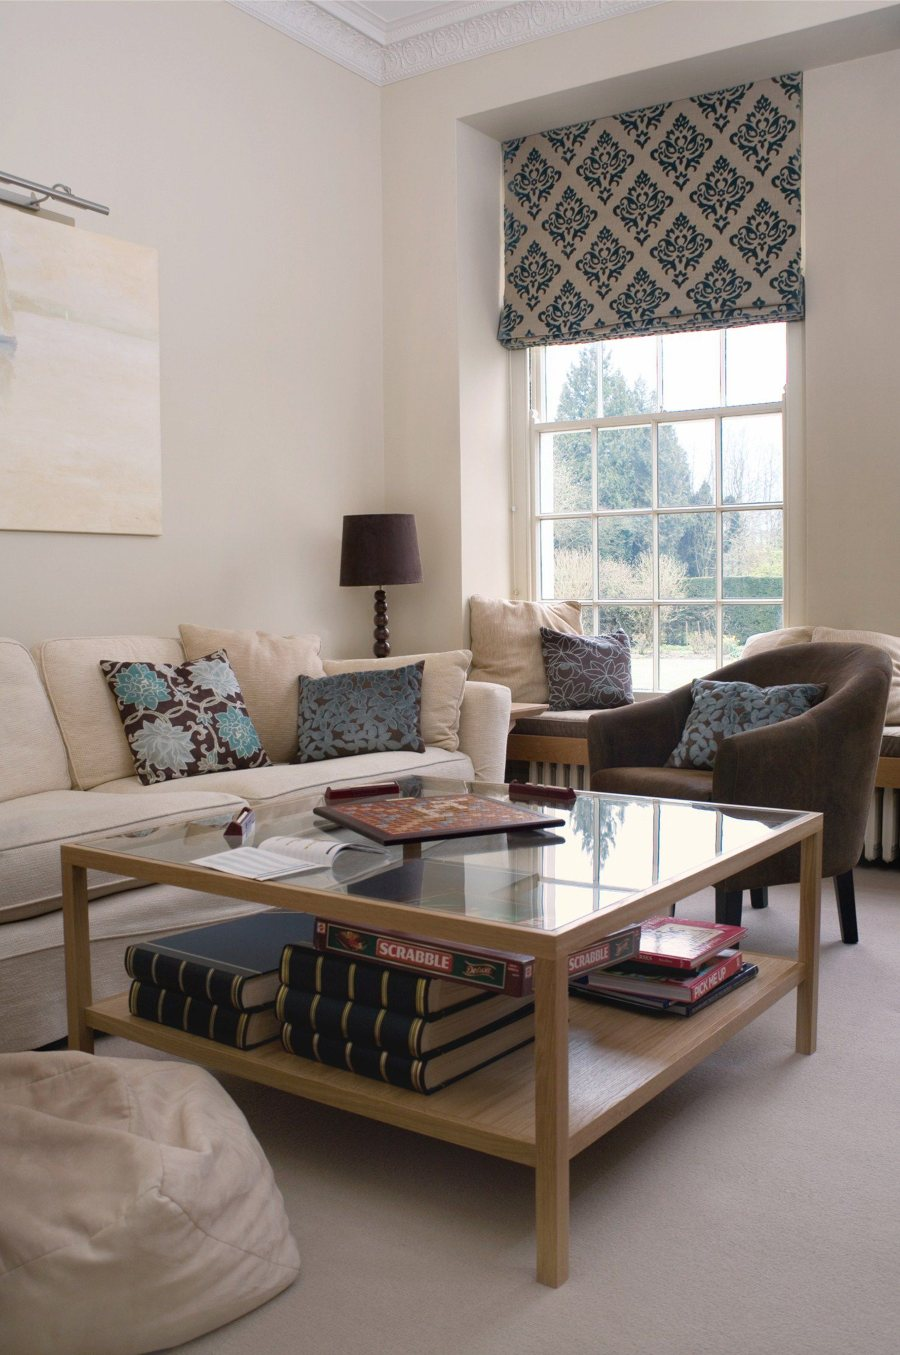 Elegant and Sophisticated Interior Design by Overbury elegant and sophisticated interior design Elegant and Sophisticated Interior Design by Overbury Elegant and Sophisticated Interior Design by Overbury 4